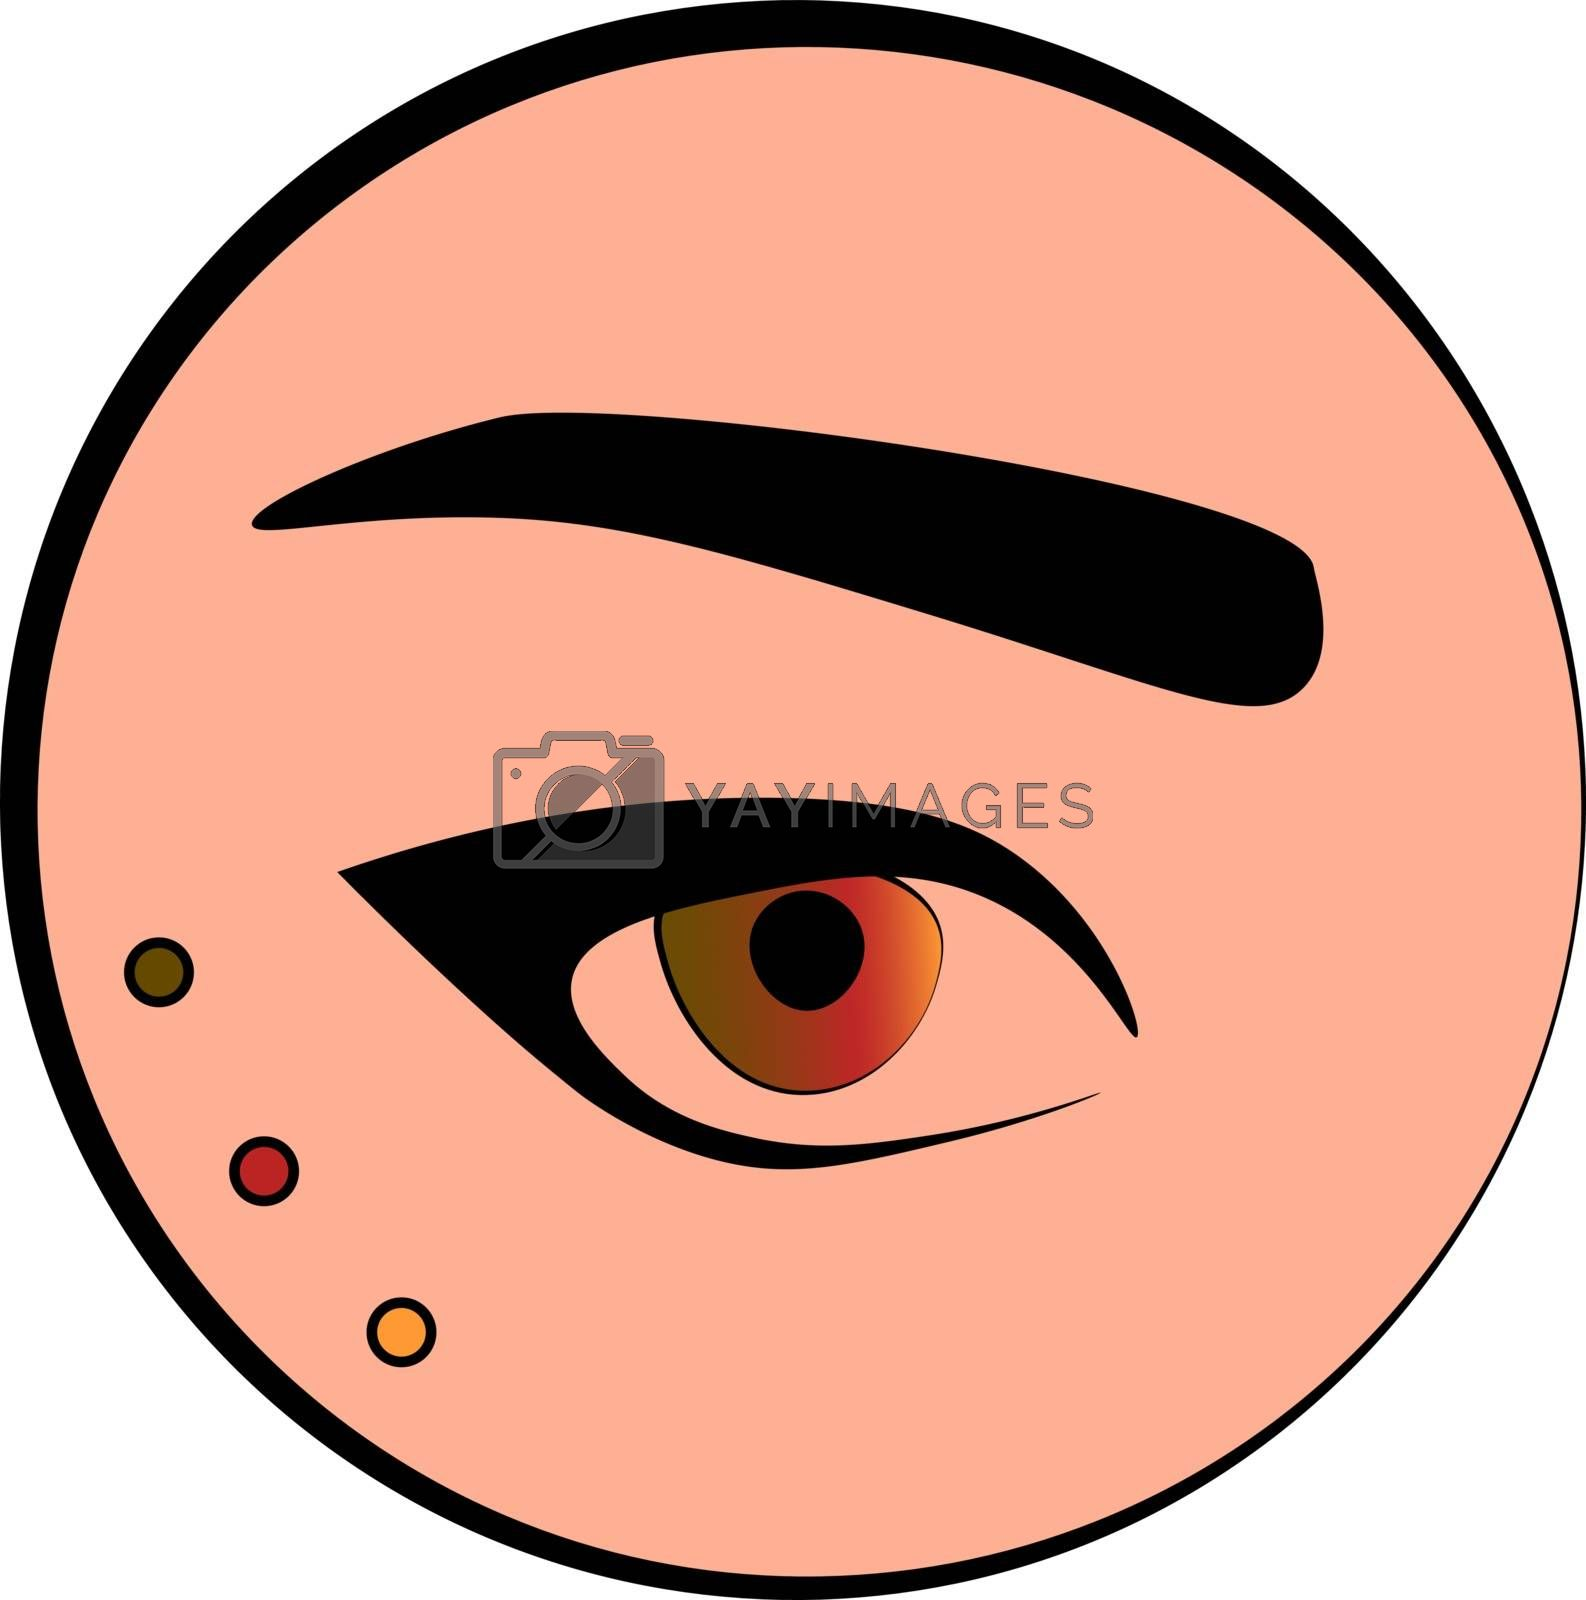 Fashion and make up icon: an eye and an eyebrow in the peach circle